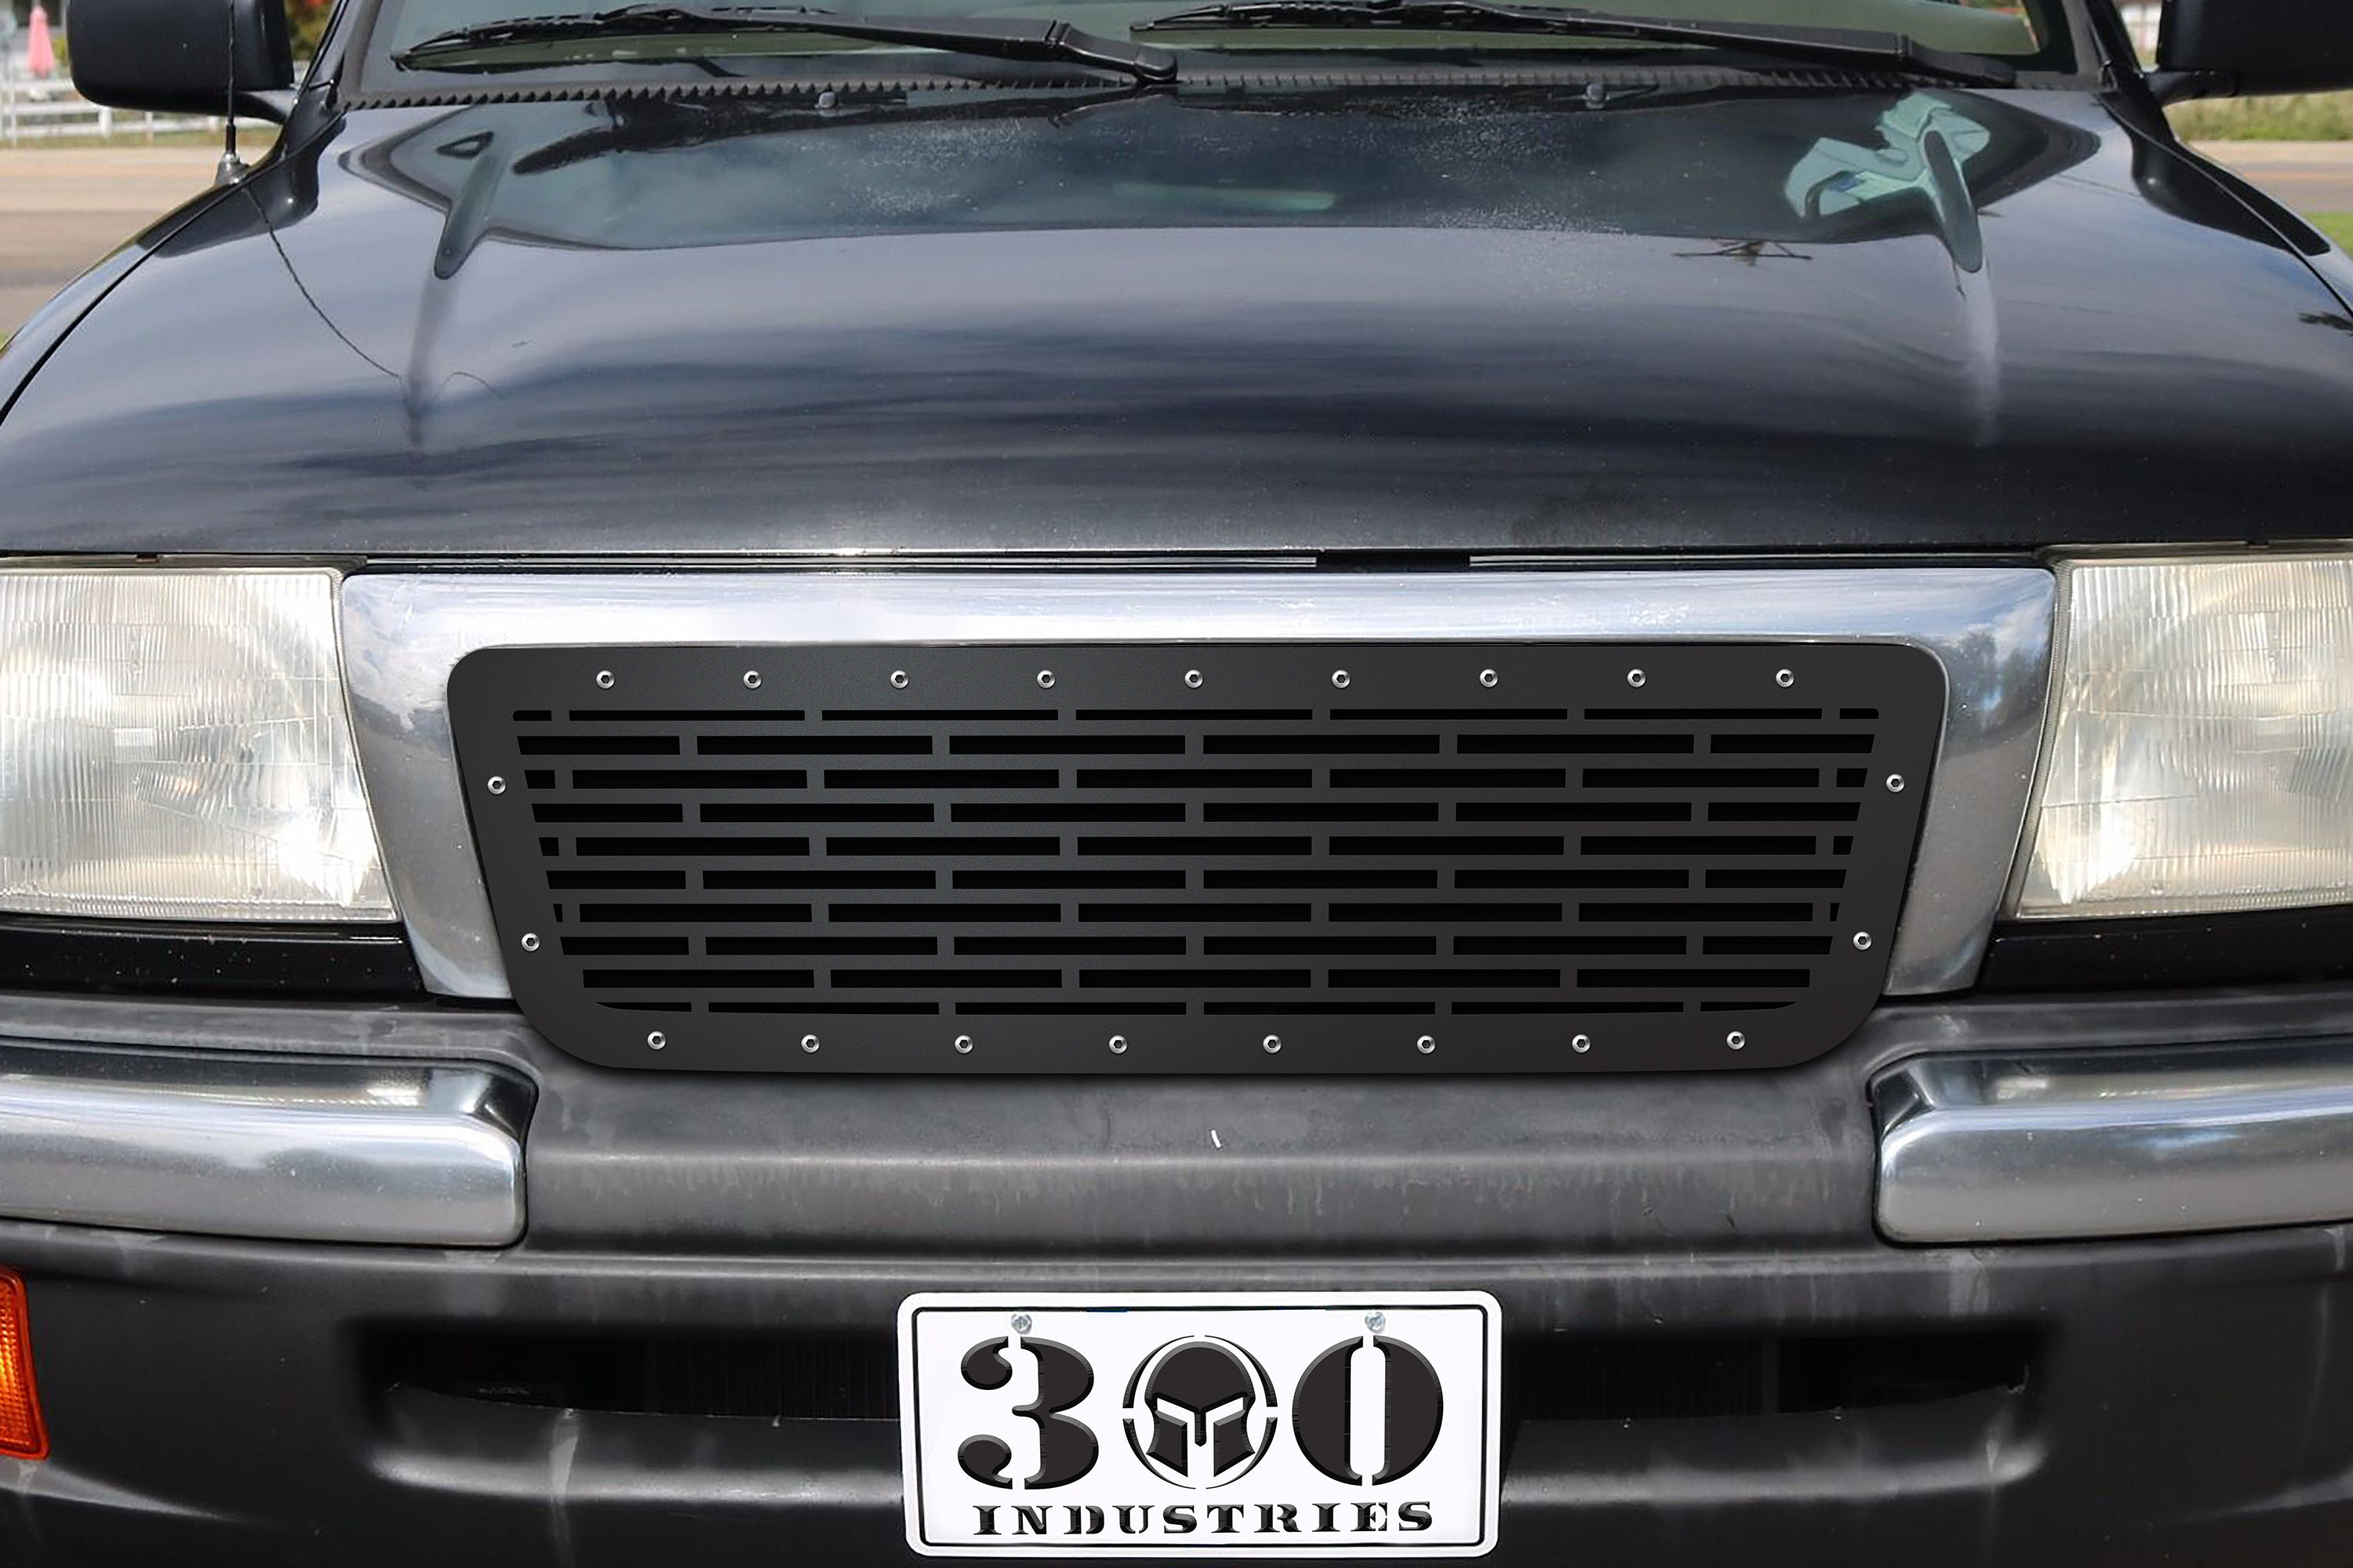 1 Piece Steel Grille for Toyota Tacoma 1998-2000